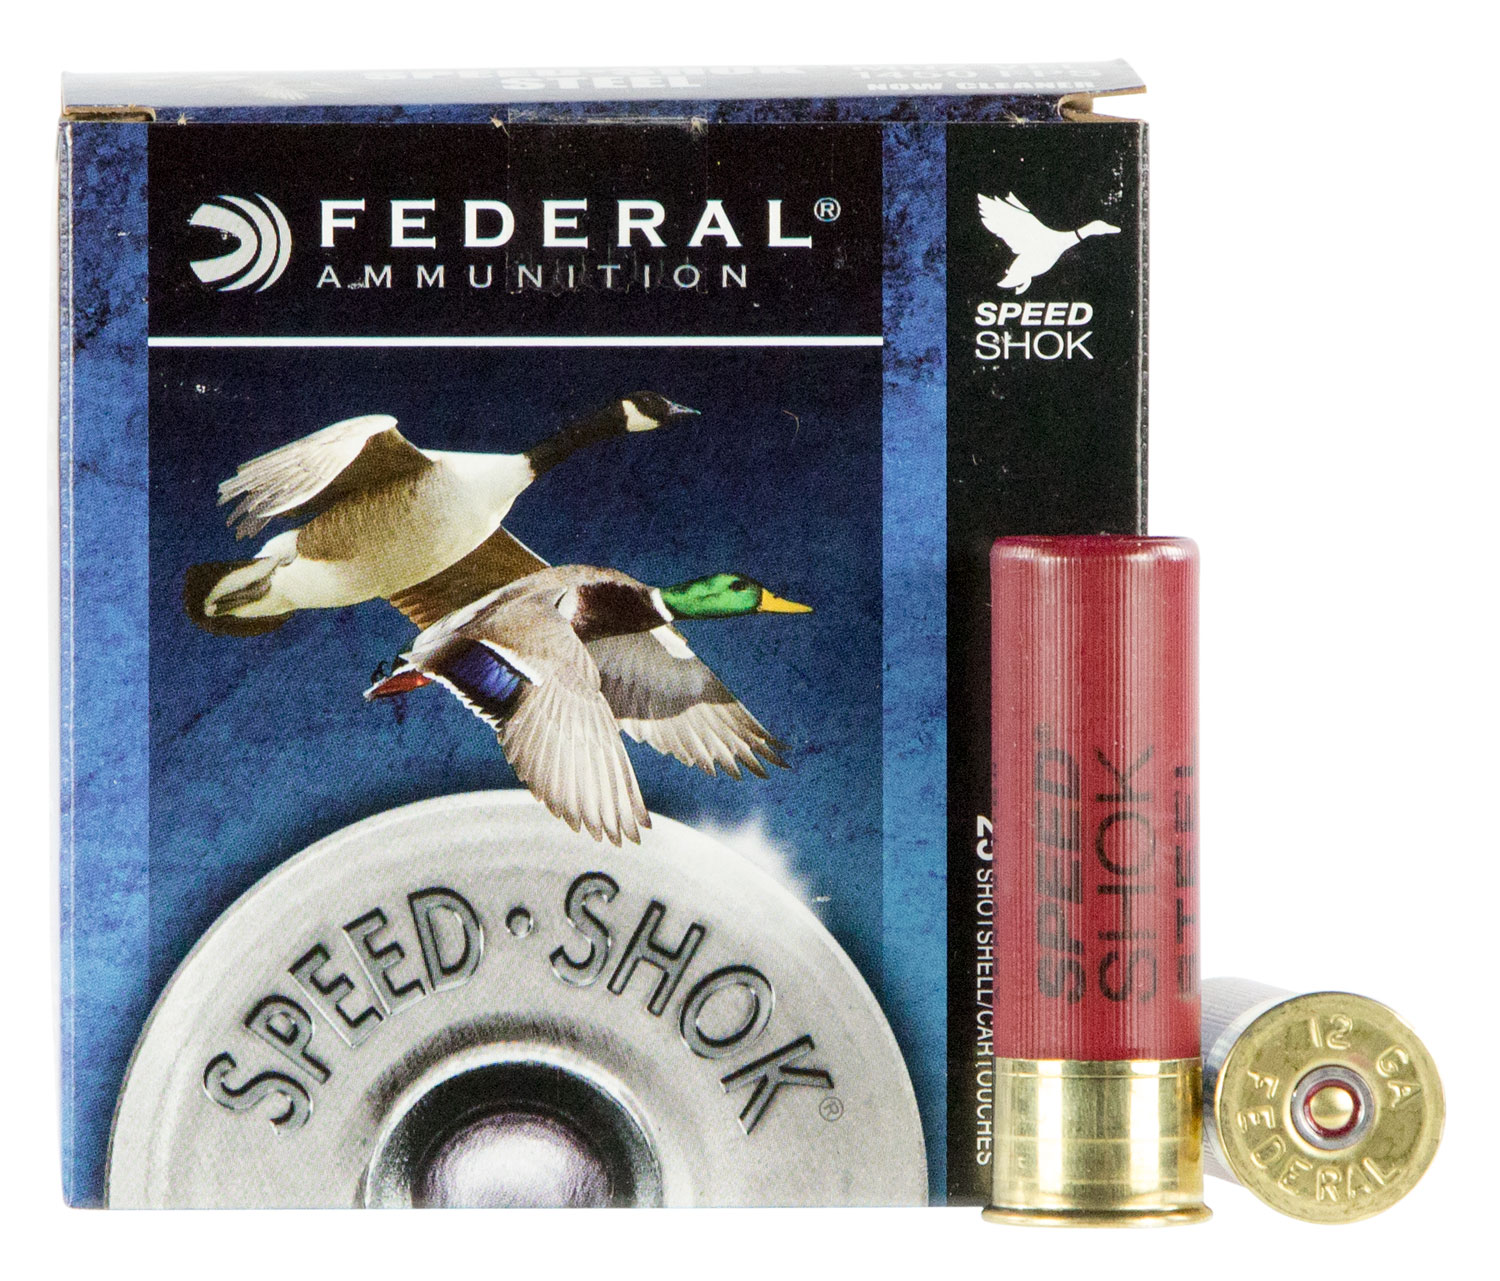 Federal WF1424 Speed-Shok  12 Gauge 3